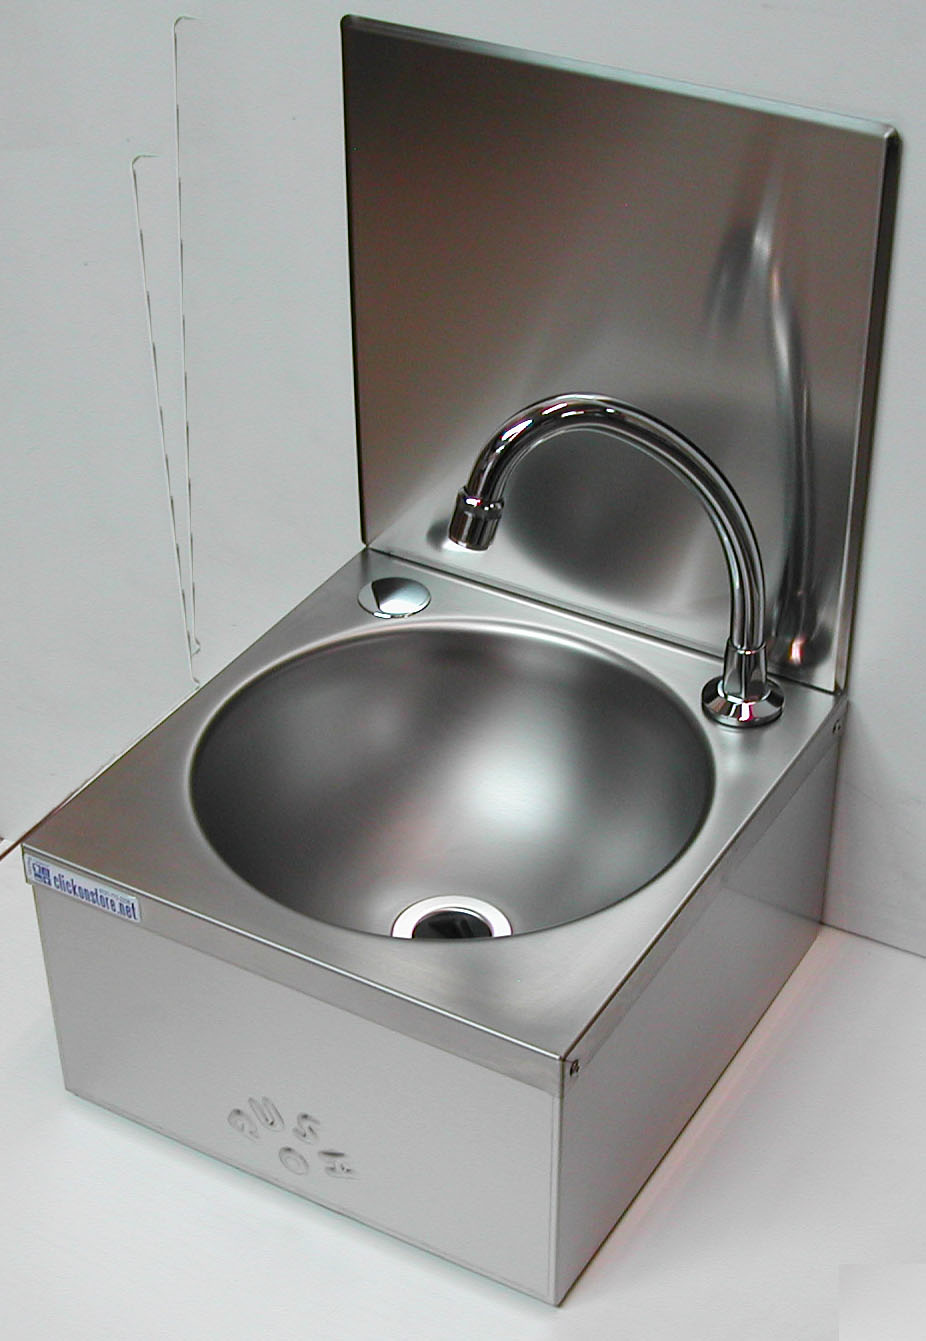 Hand Sink  Knee Operated with Splashback Sinks Bowl and Splash Back Kit  Vwhb010  Hand Basin